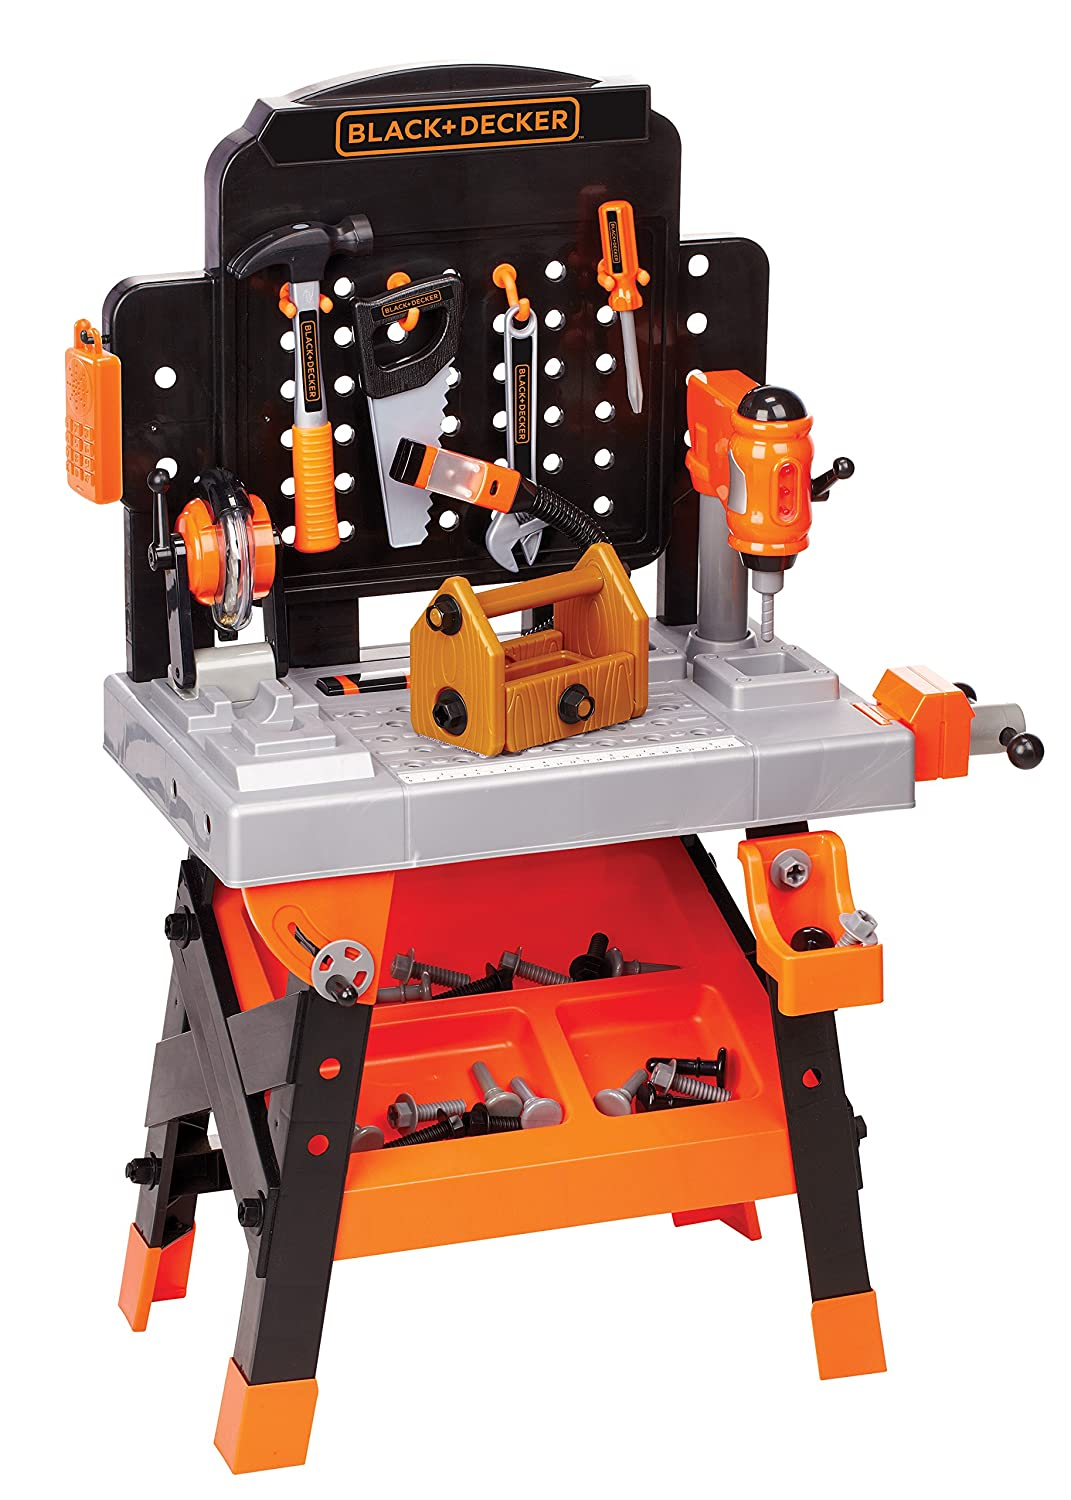 BLACK+DECKER Junior Power Workbench Workshop with Realistic Action Lights & Sounds - 75 Tools & Accessories [Amazon Exclusive] Jakks 81878